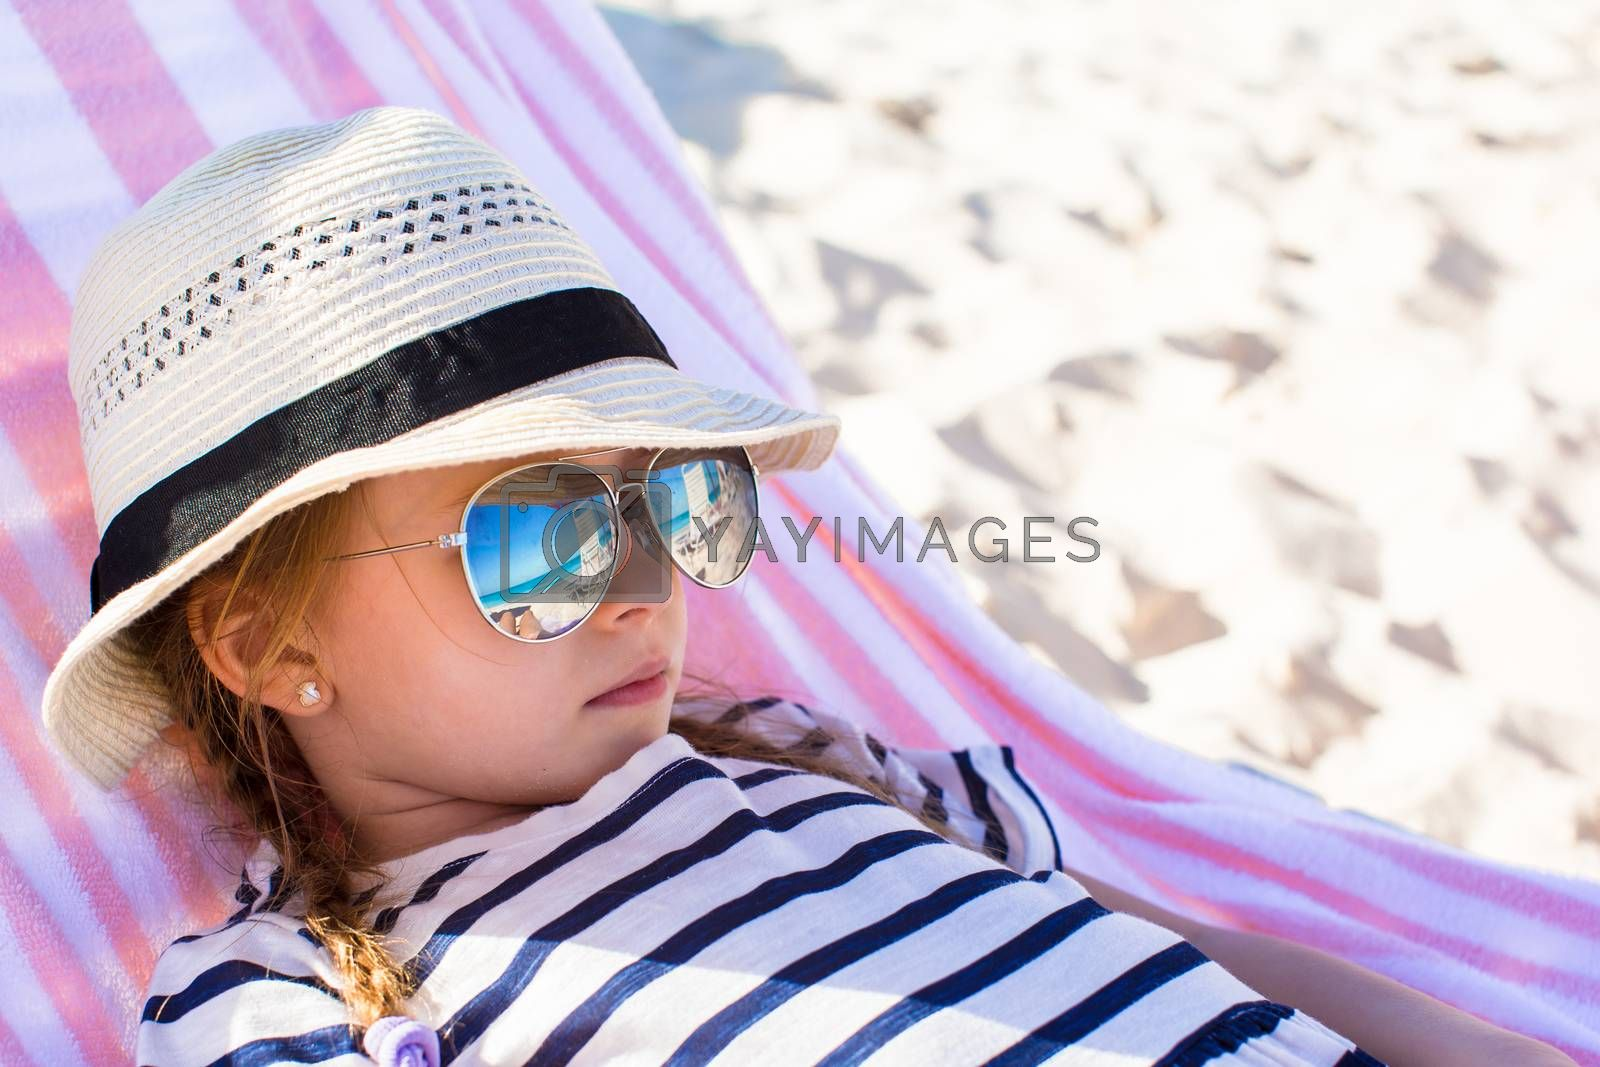 Royalty free image of Portrait of little adorable girl lying on beach lounger by travnikovstudio